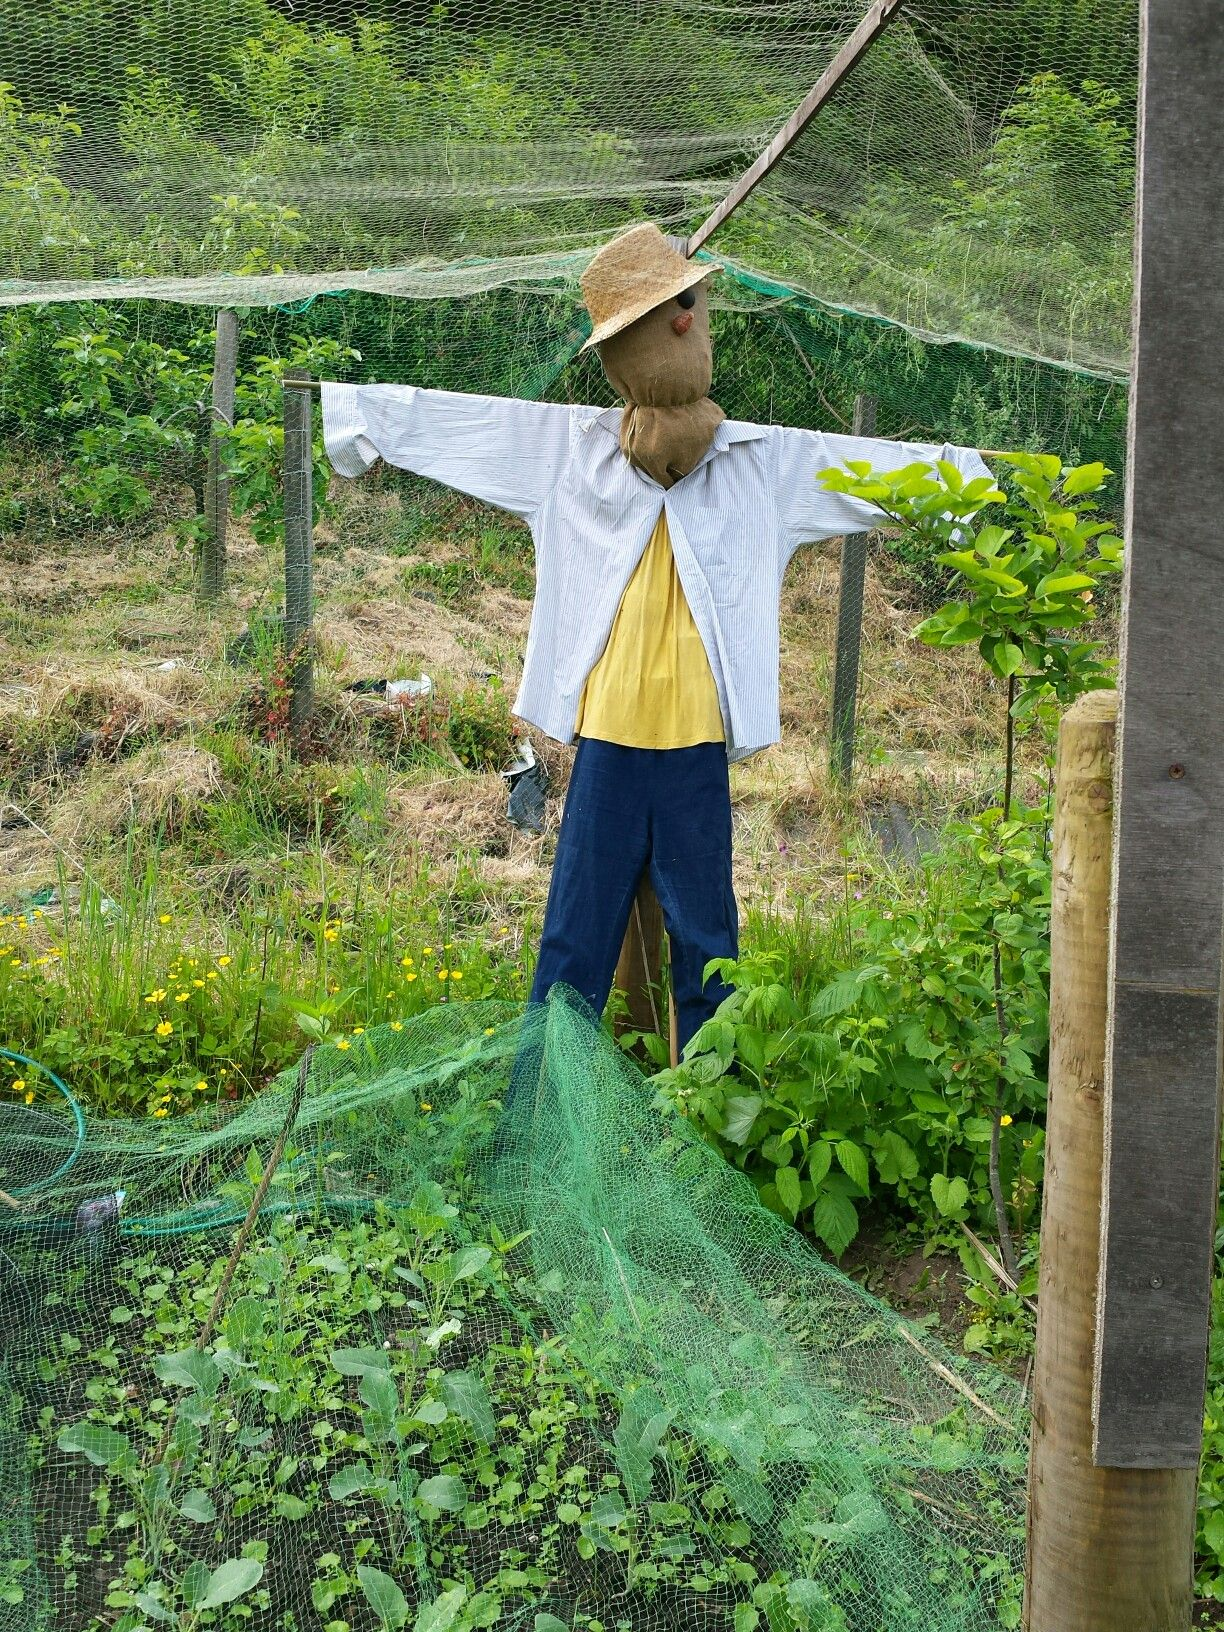 My new garden scarecrow 2016